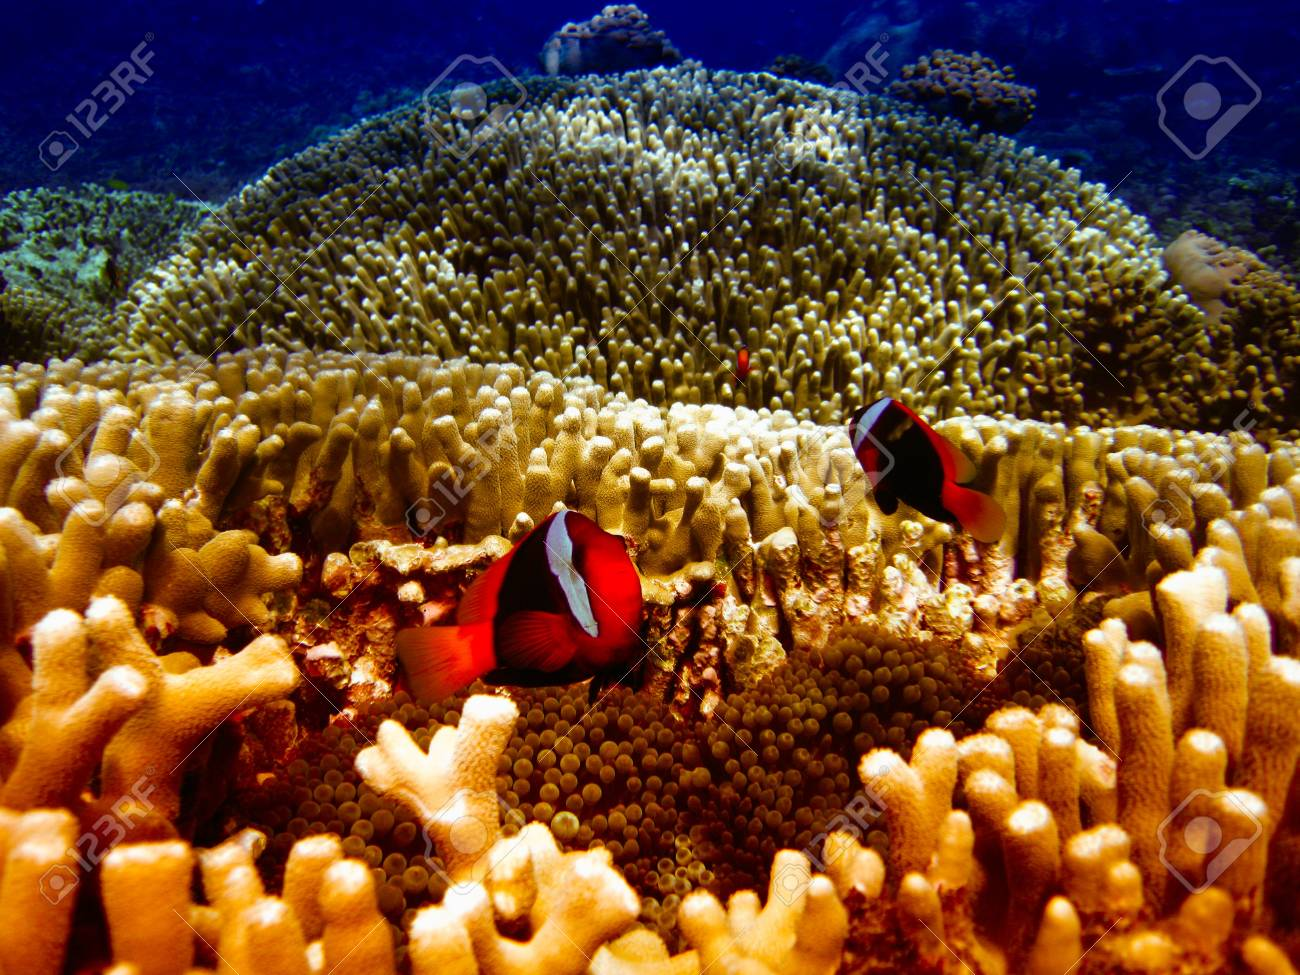 Nemo Fish on the Great Barrier Reef in Queensland, Australia Stock Photo - 19541875